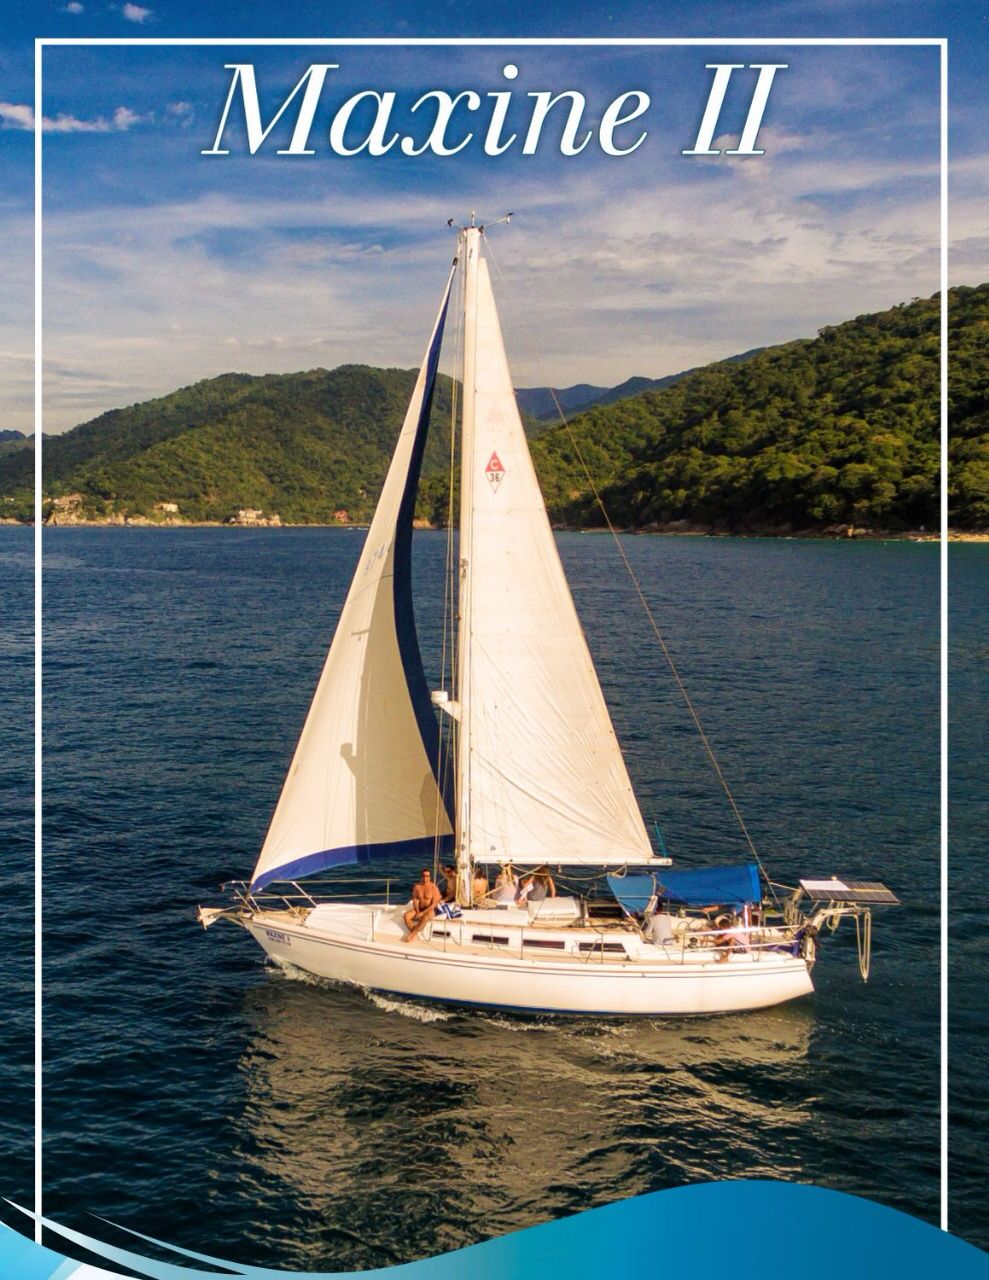 36 ft. Catalina Sailboat - Up to 10 People